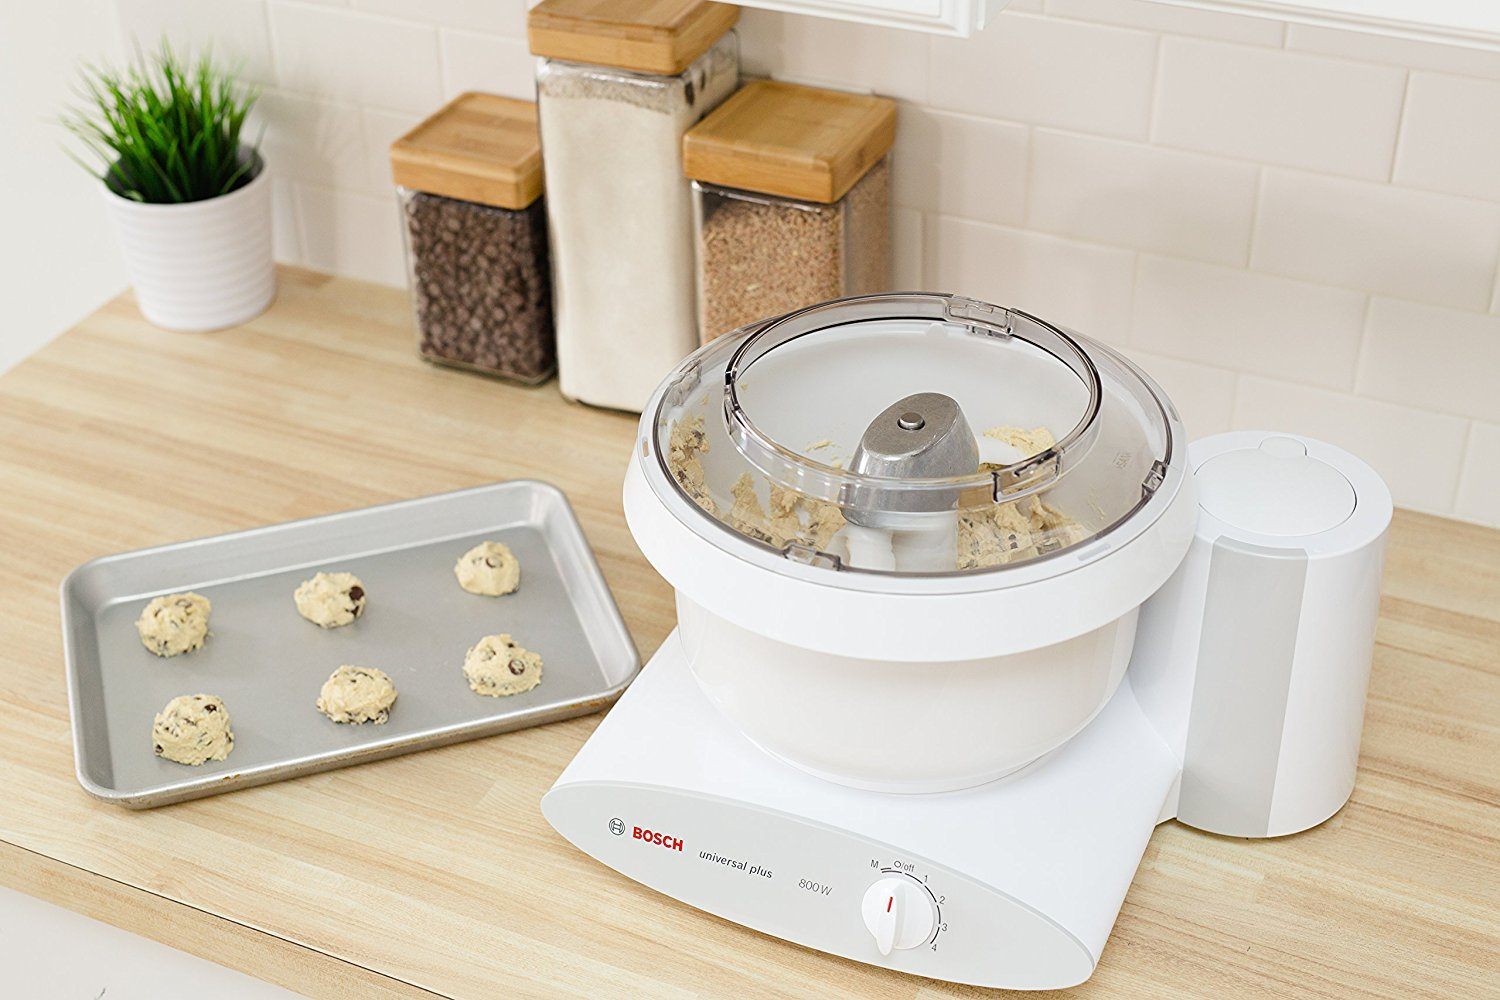 Bosch Universal Plus Stand Mixer Review | Make Bread At Home